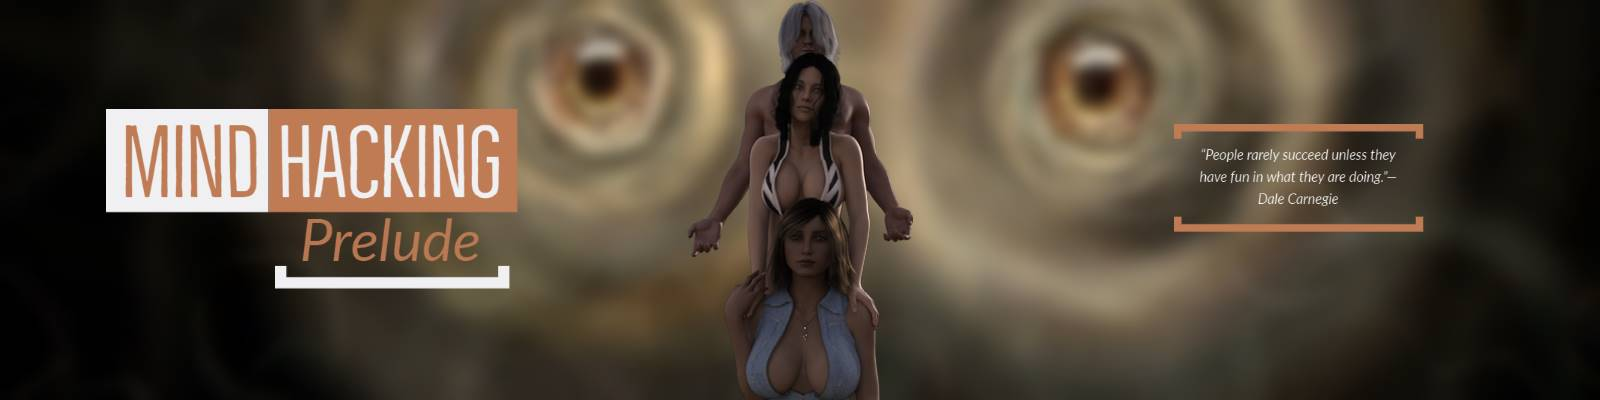 mind hacking download latest version adult game